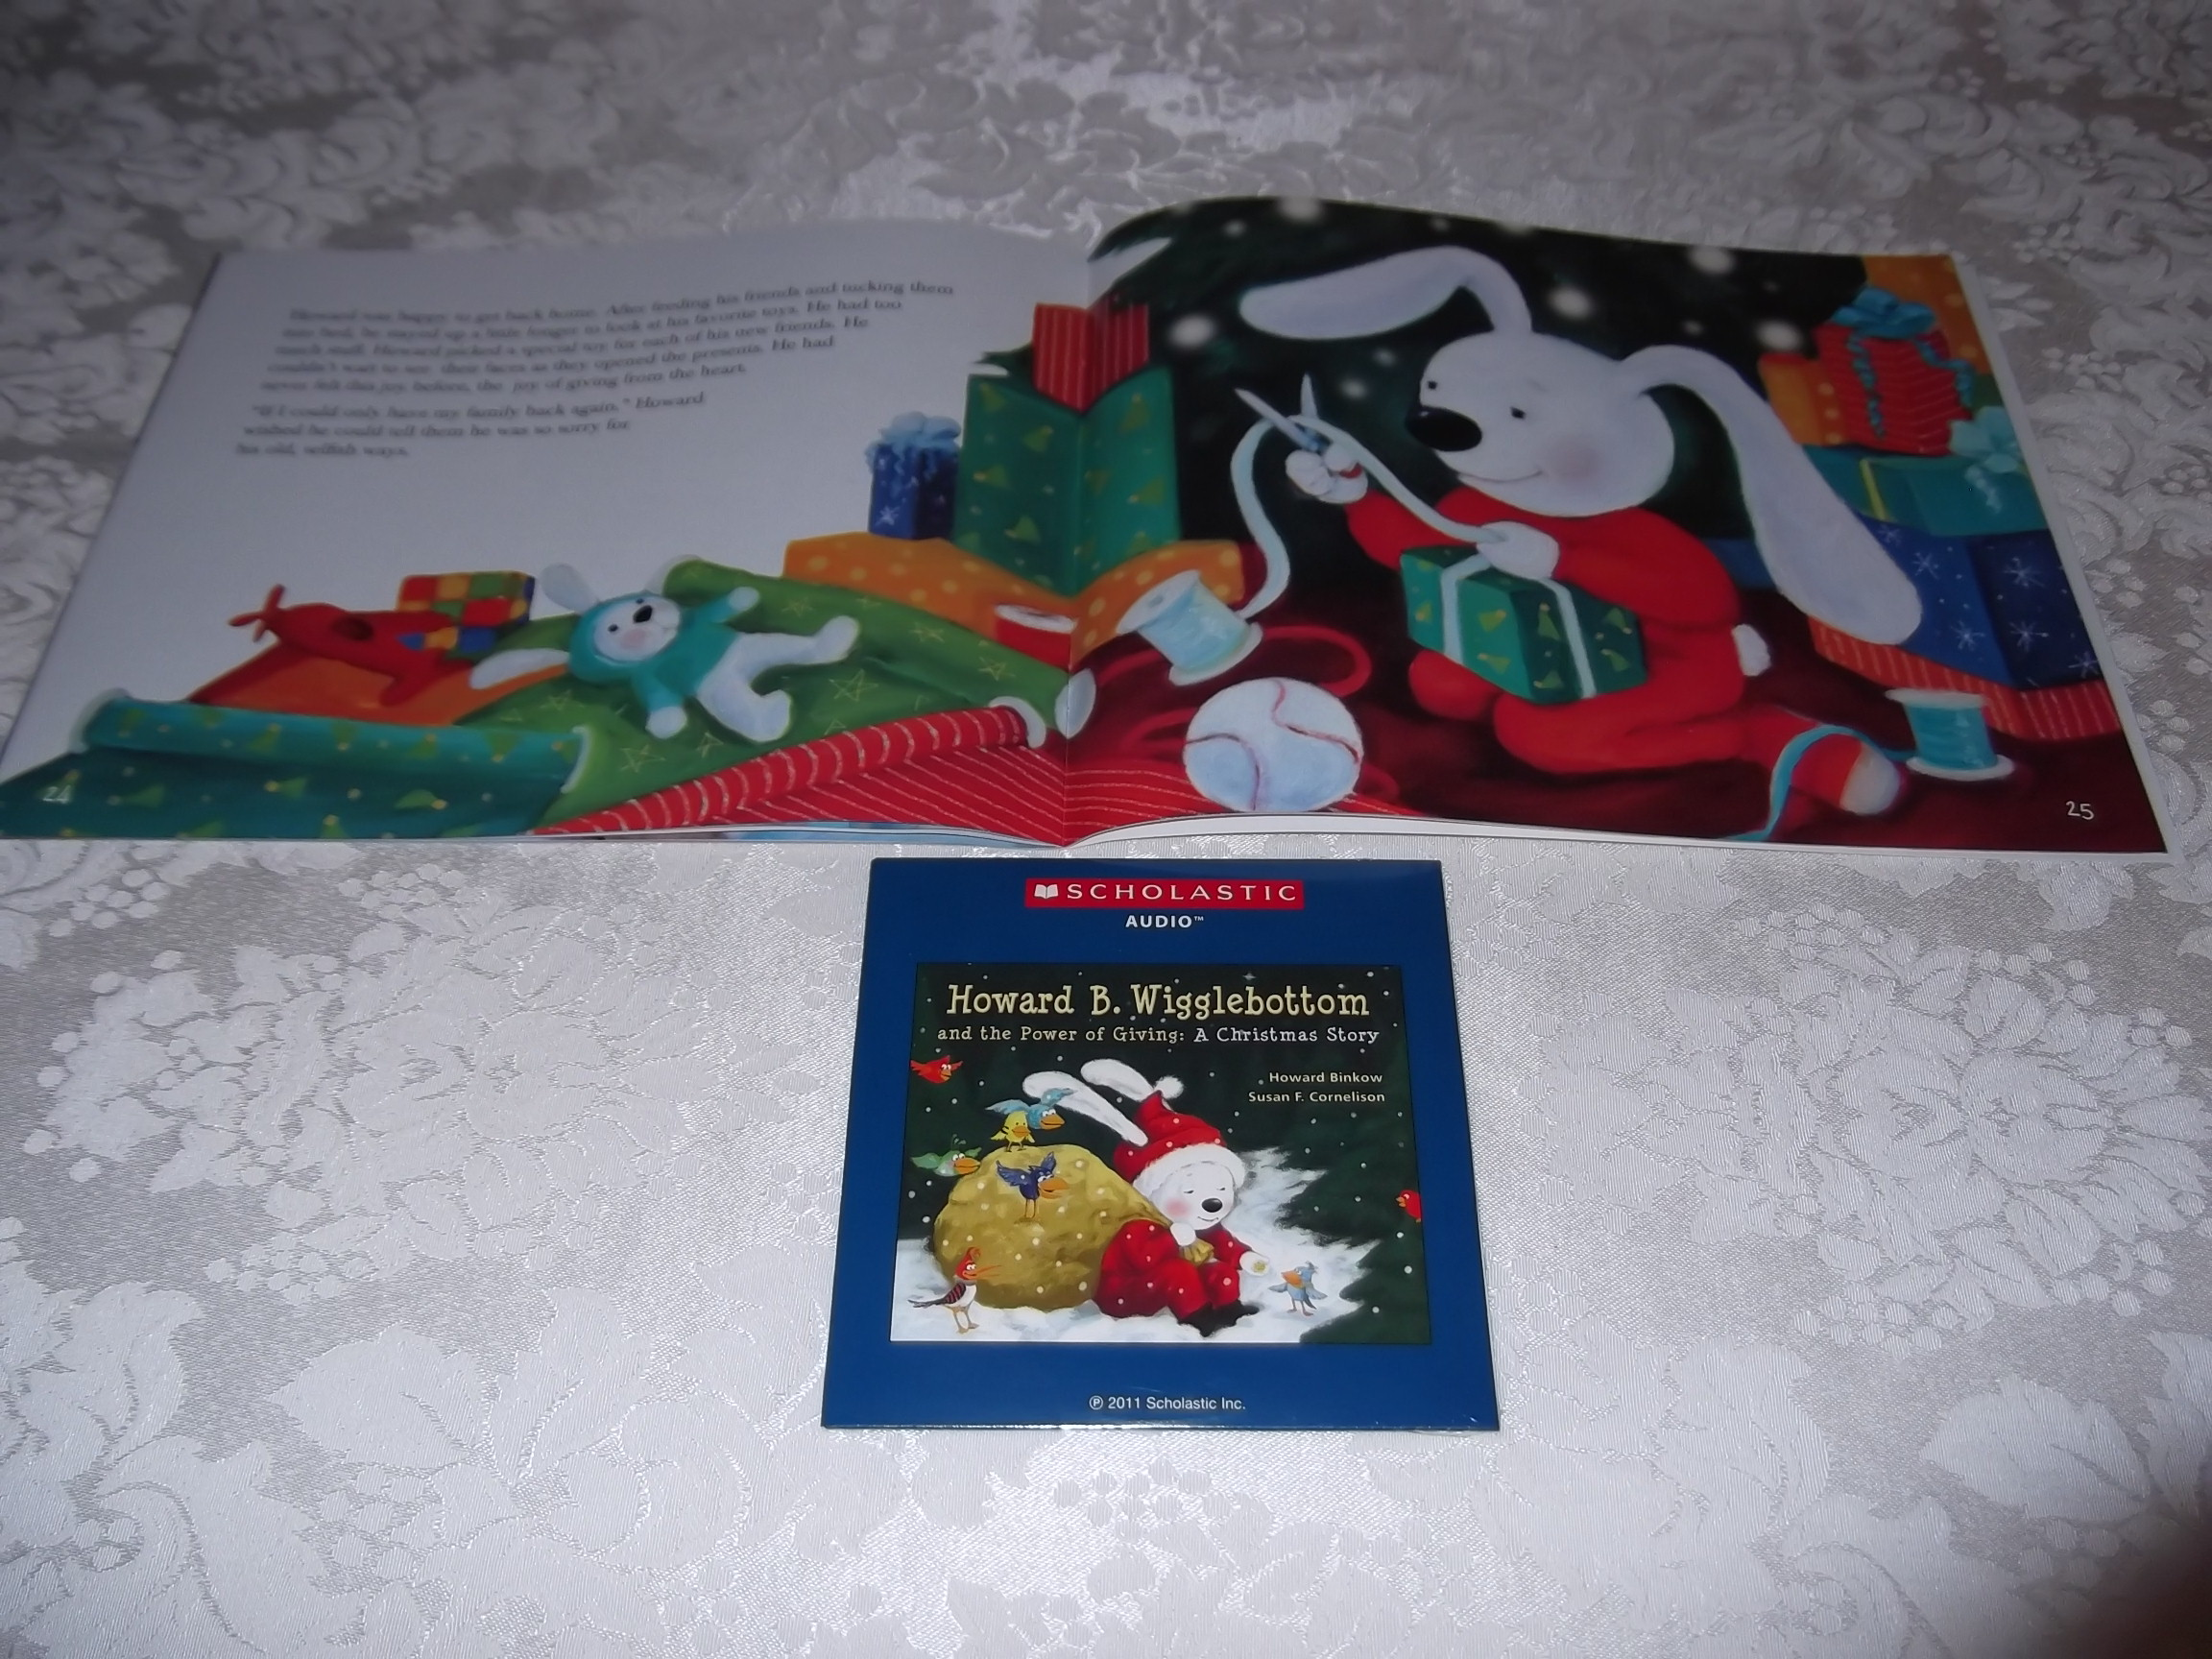 Image 4 of Howard B. Wigglebottom and the Power of Giving: A Christmas Story Audio CD & SC